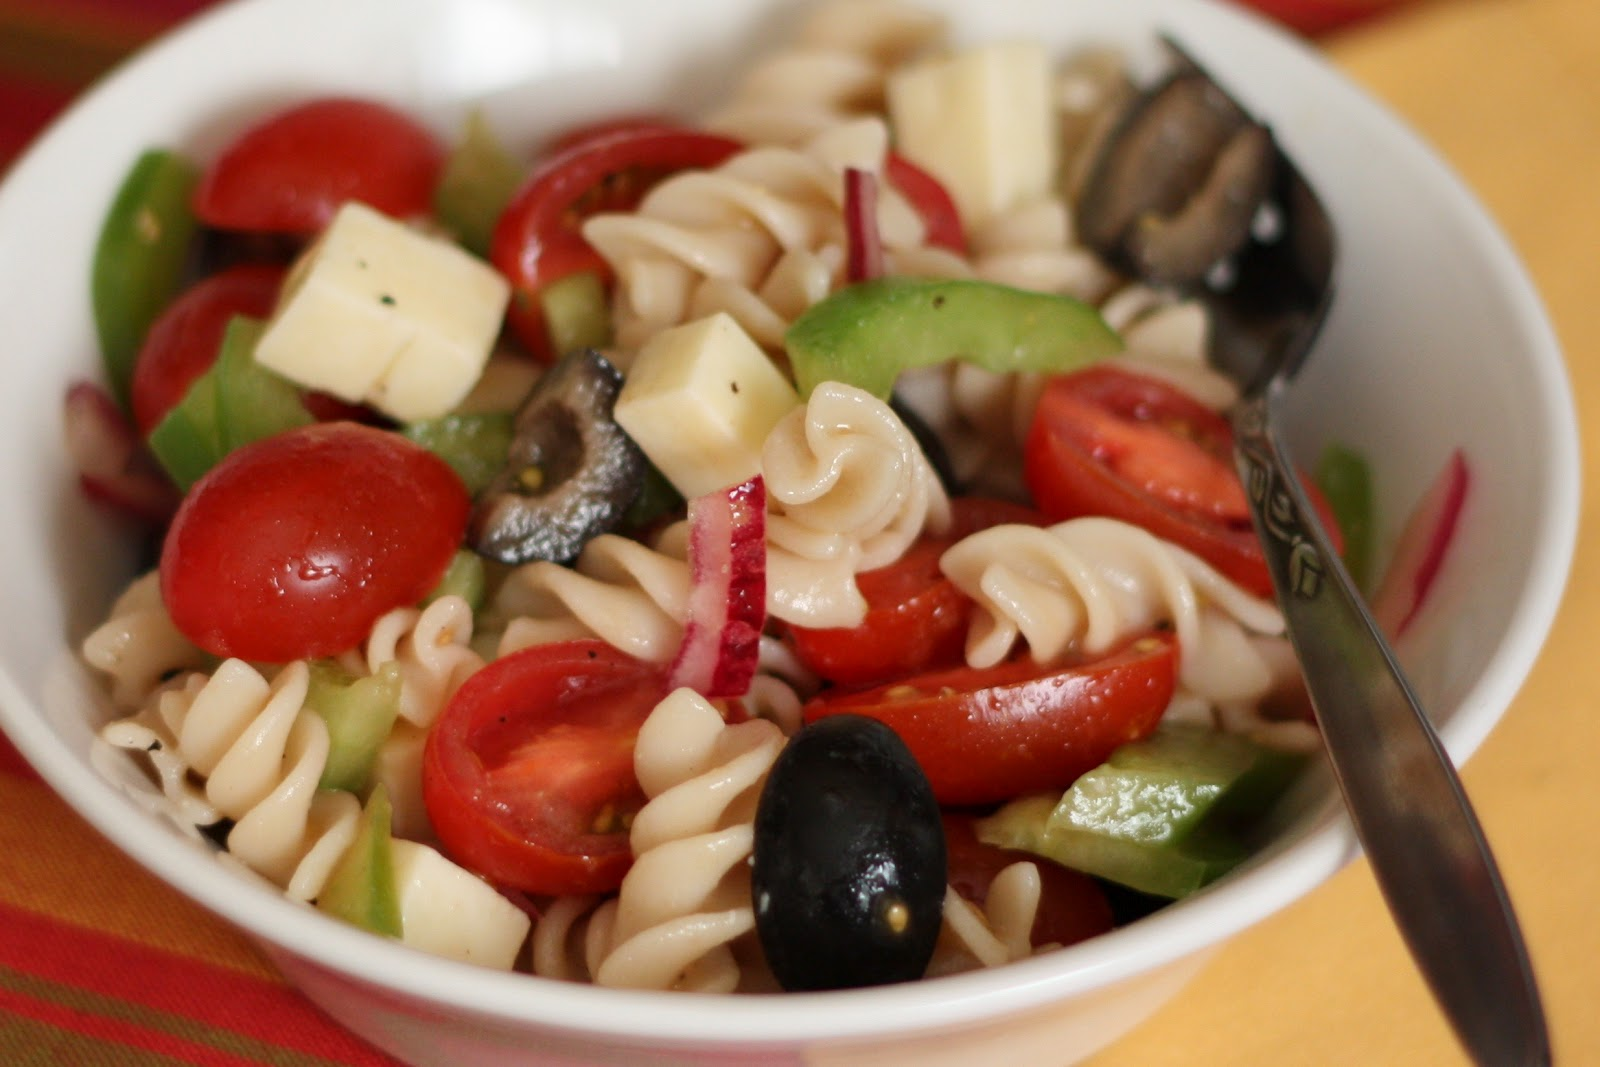 ... In The Kitchen: Tangy Pasta Salad with Tomatoes, Peppers and Olives